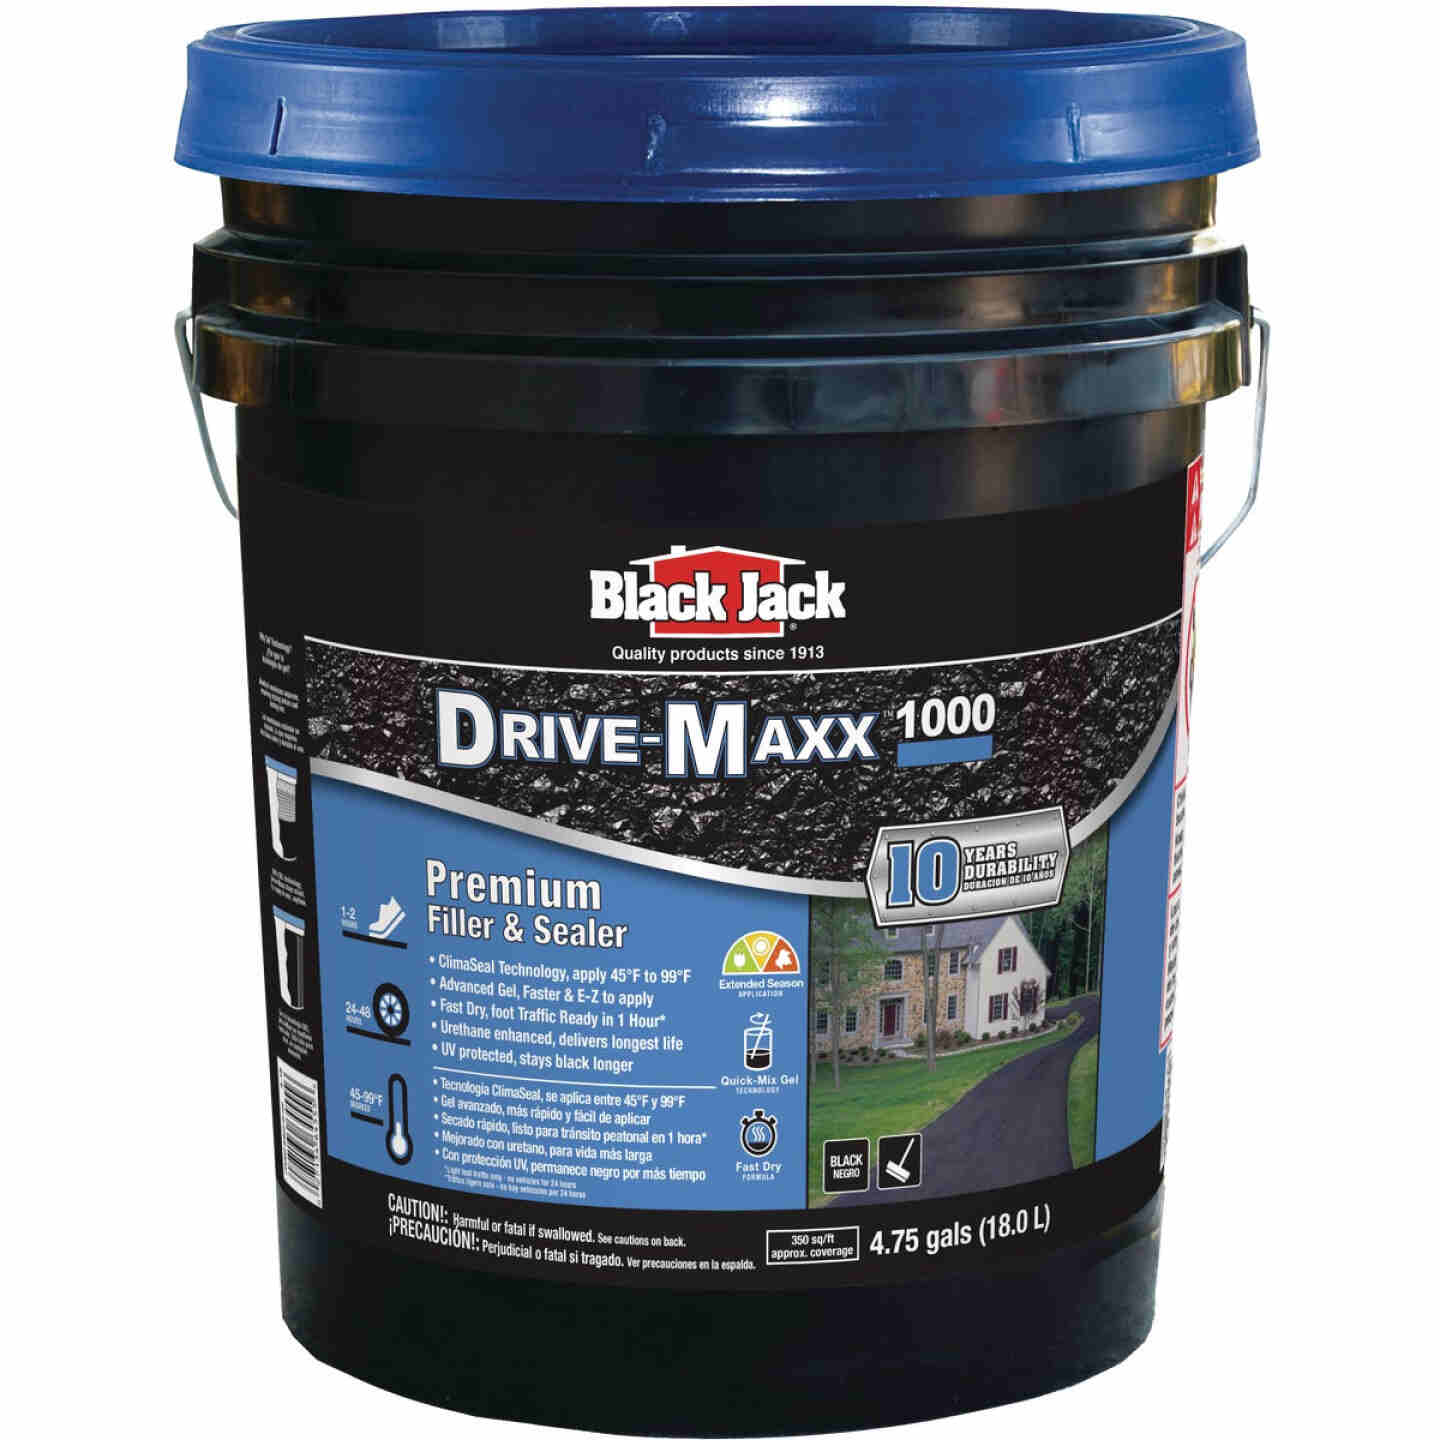 Black Jack Drive-Maxx 1000 5 Gal. 10 Yr. Fast Dry Filler and Sealer Image 1